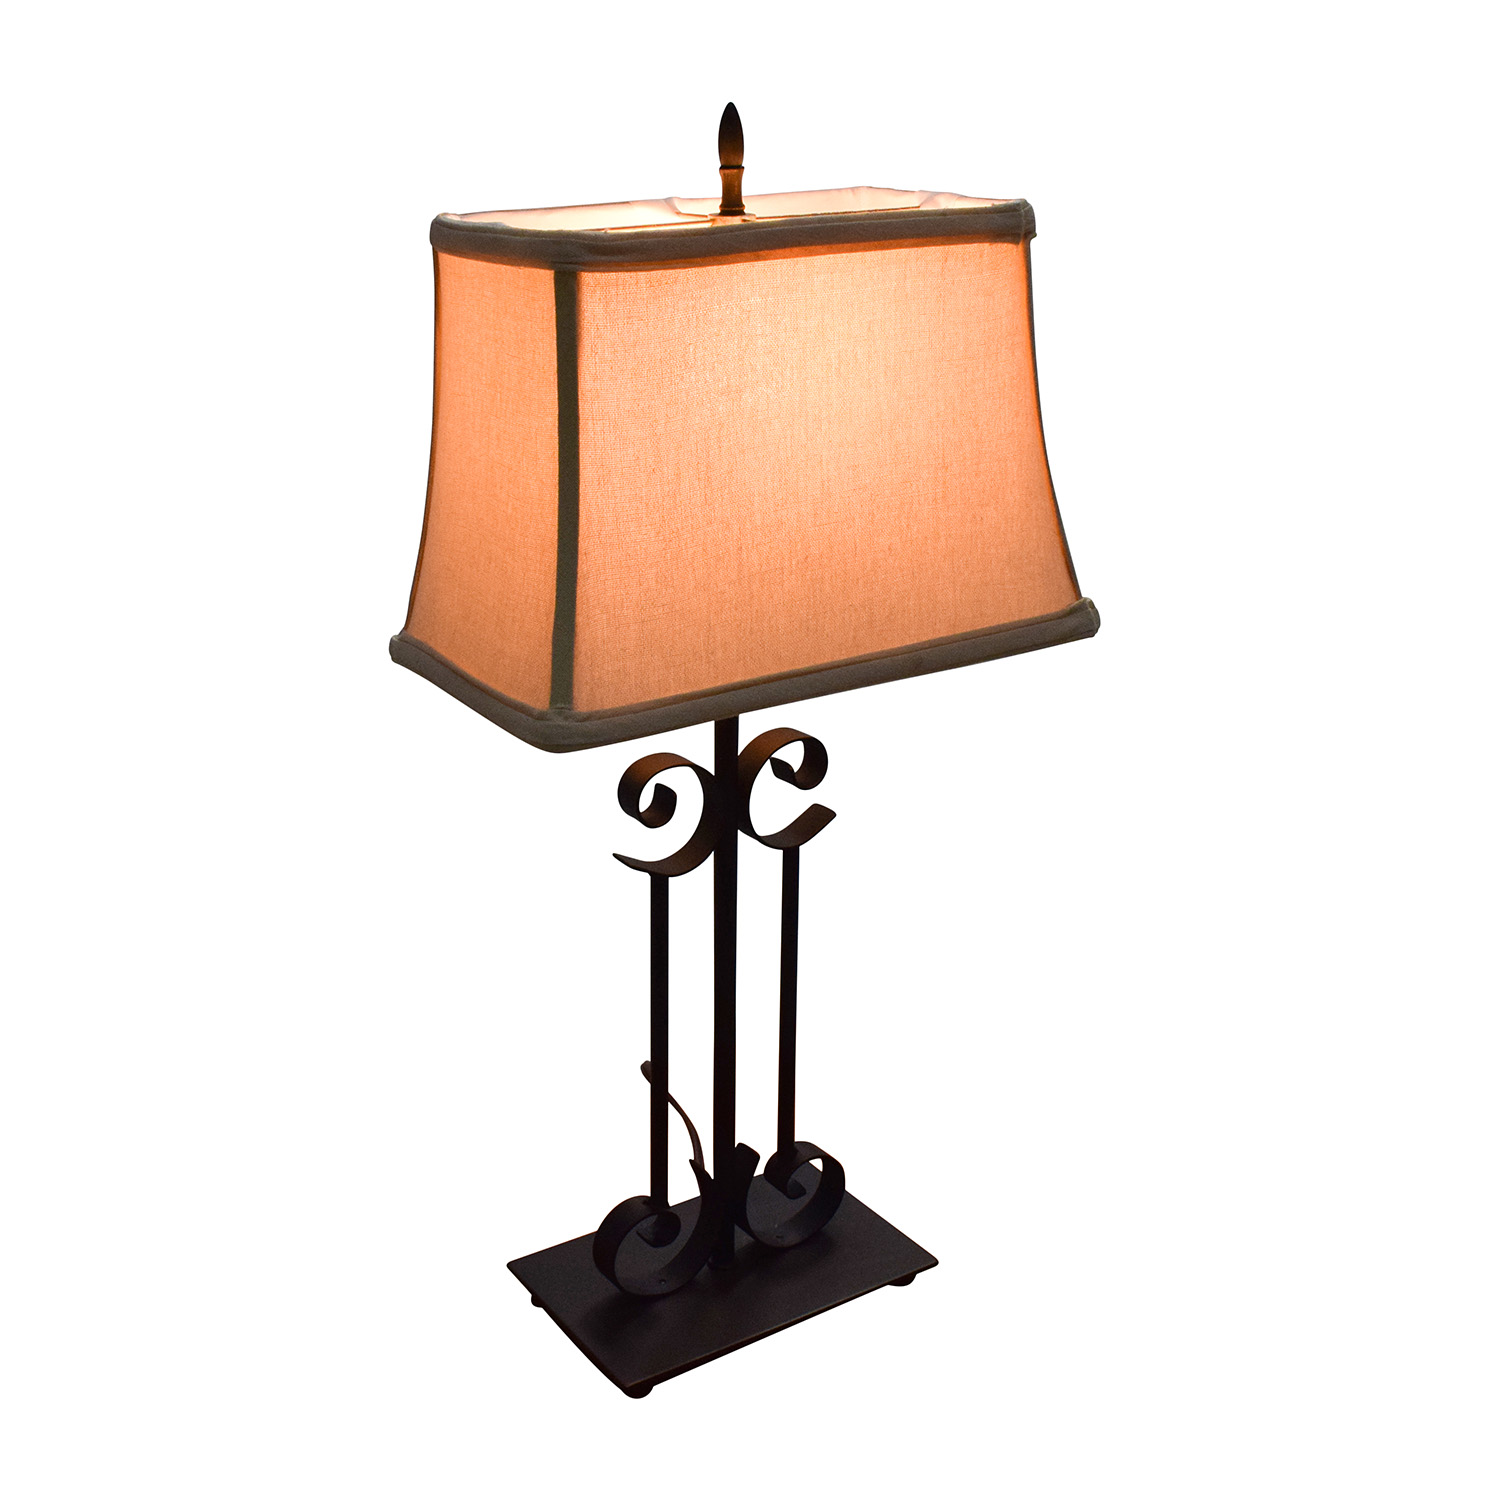 68 off unknown rectangular table lamp with black metal base decor unknown rectangular table lamp with black metal base discount aloadofball Image collections